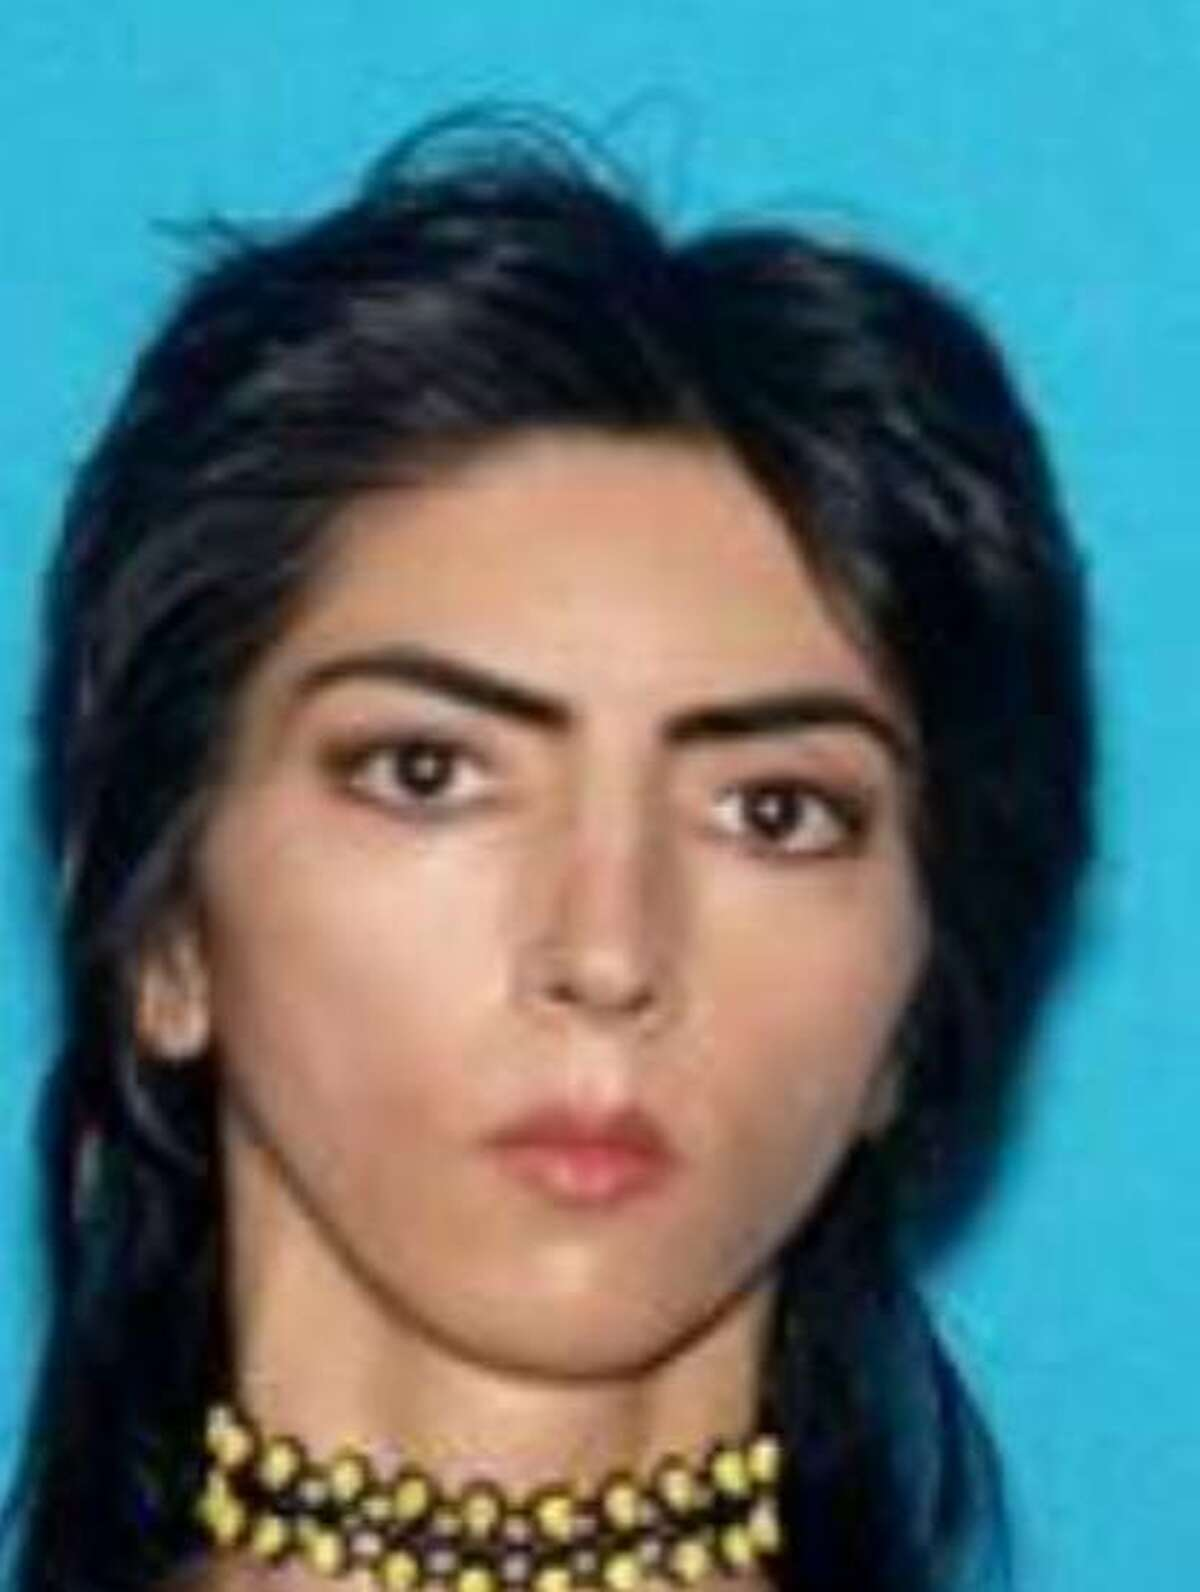 San Bruno police identified Nasim�Najafi�Aghdam, 39, as the�person who shot three people on YouTube's campus Tuesday afternoon.�Her social media accounts show that she was increasingly frustrated with the company�s treatment of her videos on the website.